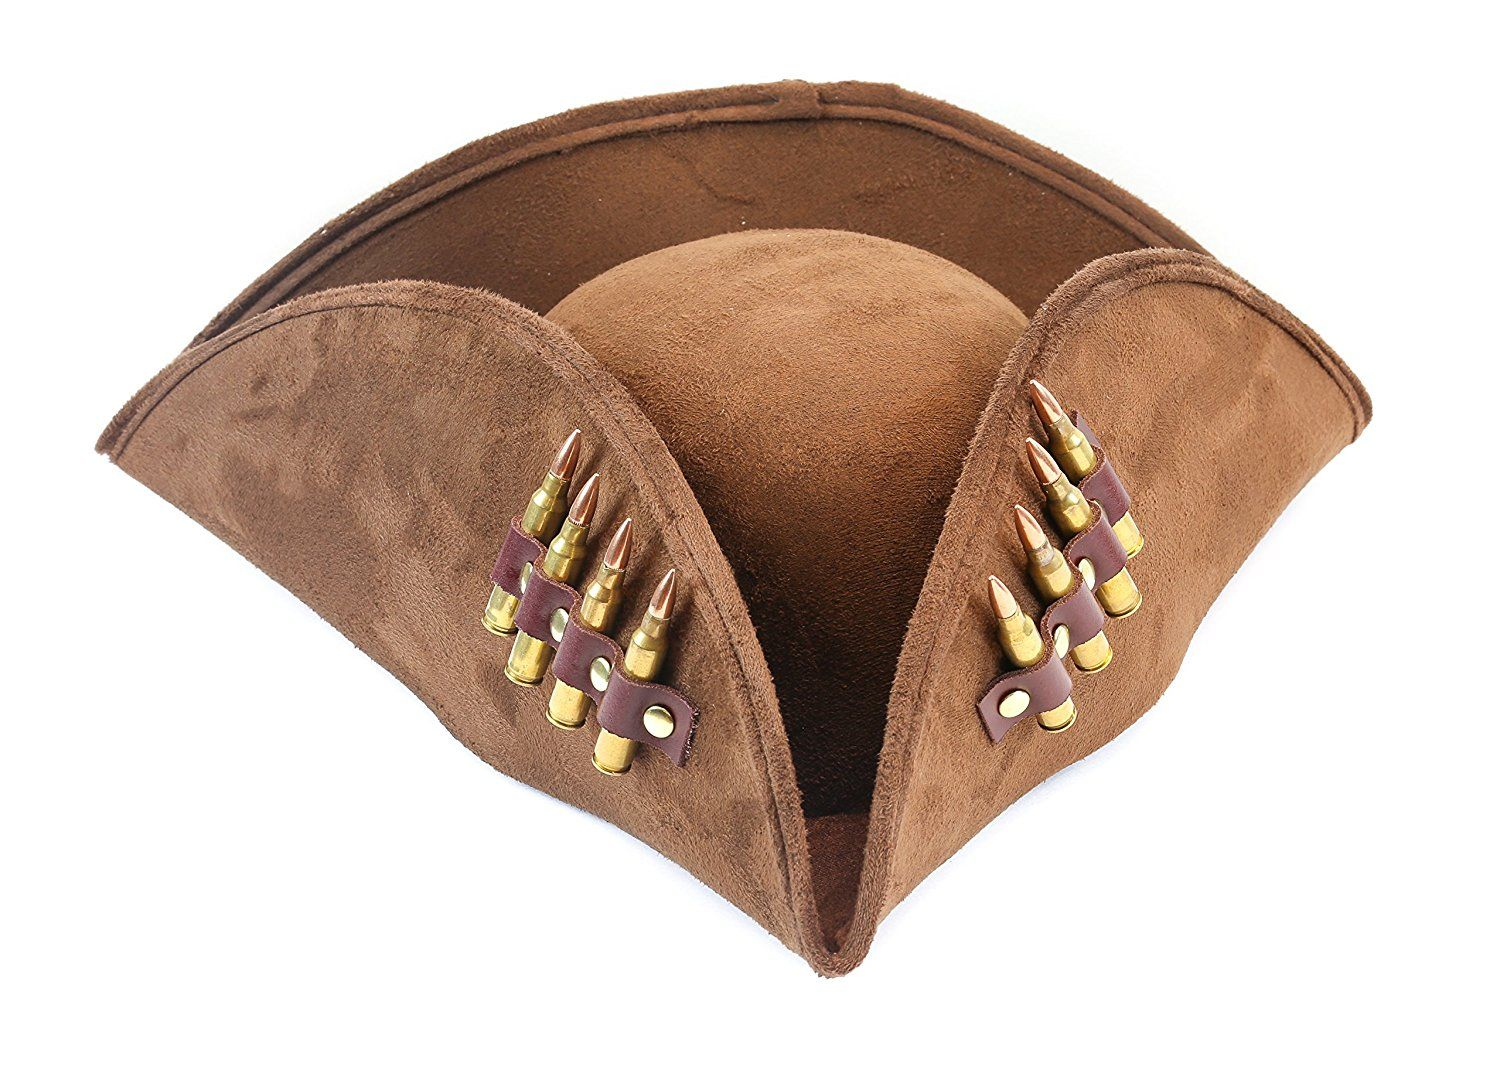 FANCY DRESS ADULT BROWN SUEDE PIRATE HAT WITH HAIR